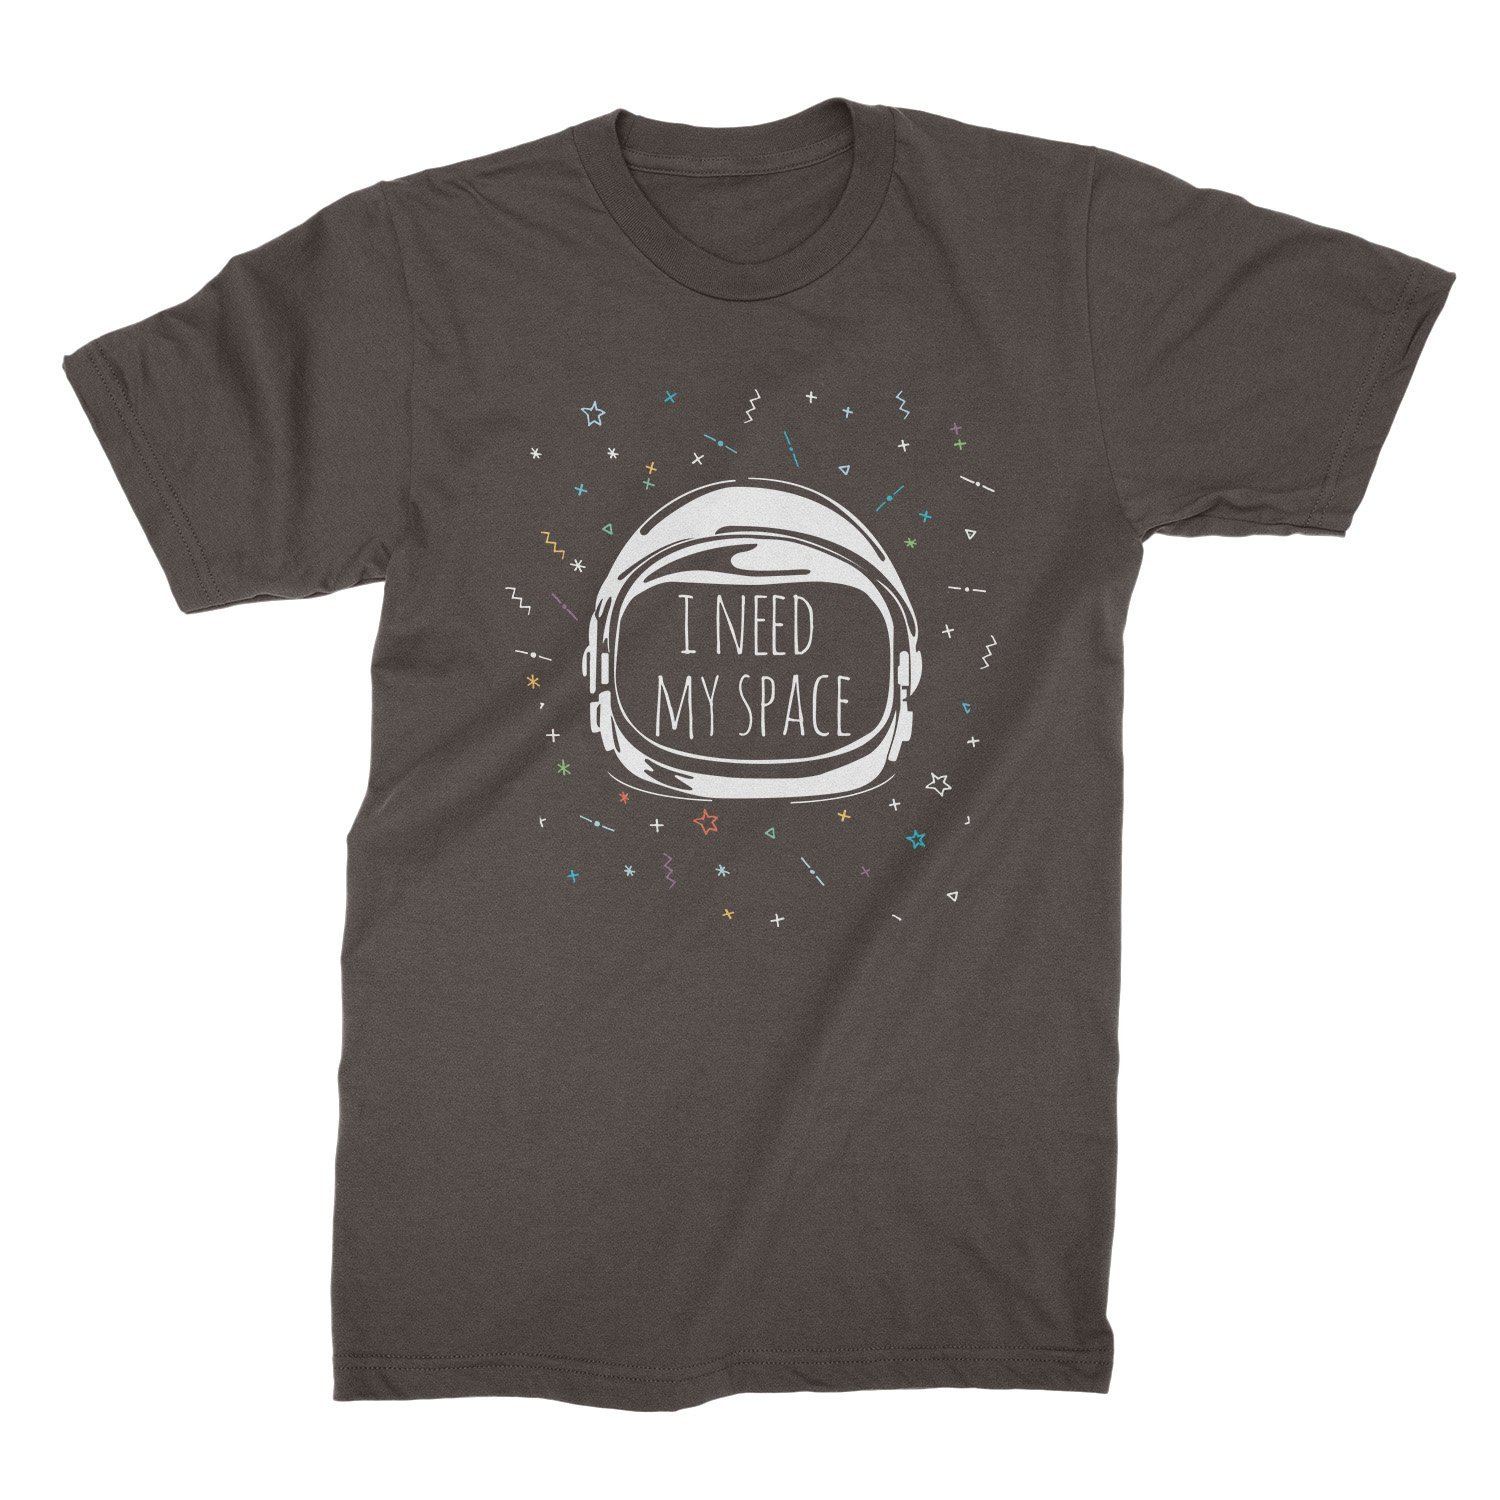 We Got Good I Need My Space Shirt Outerspace Tshirt